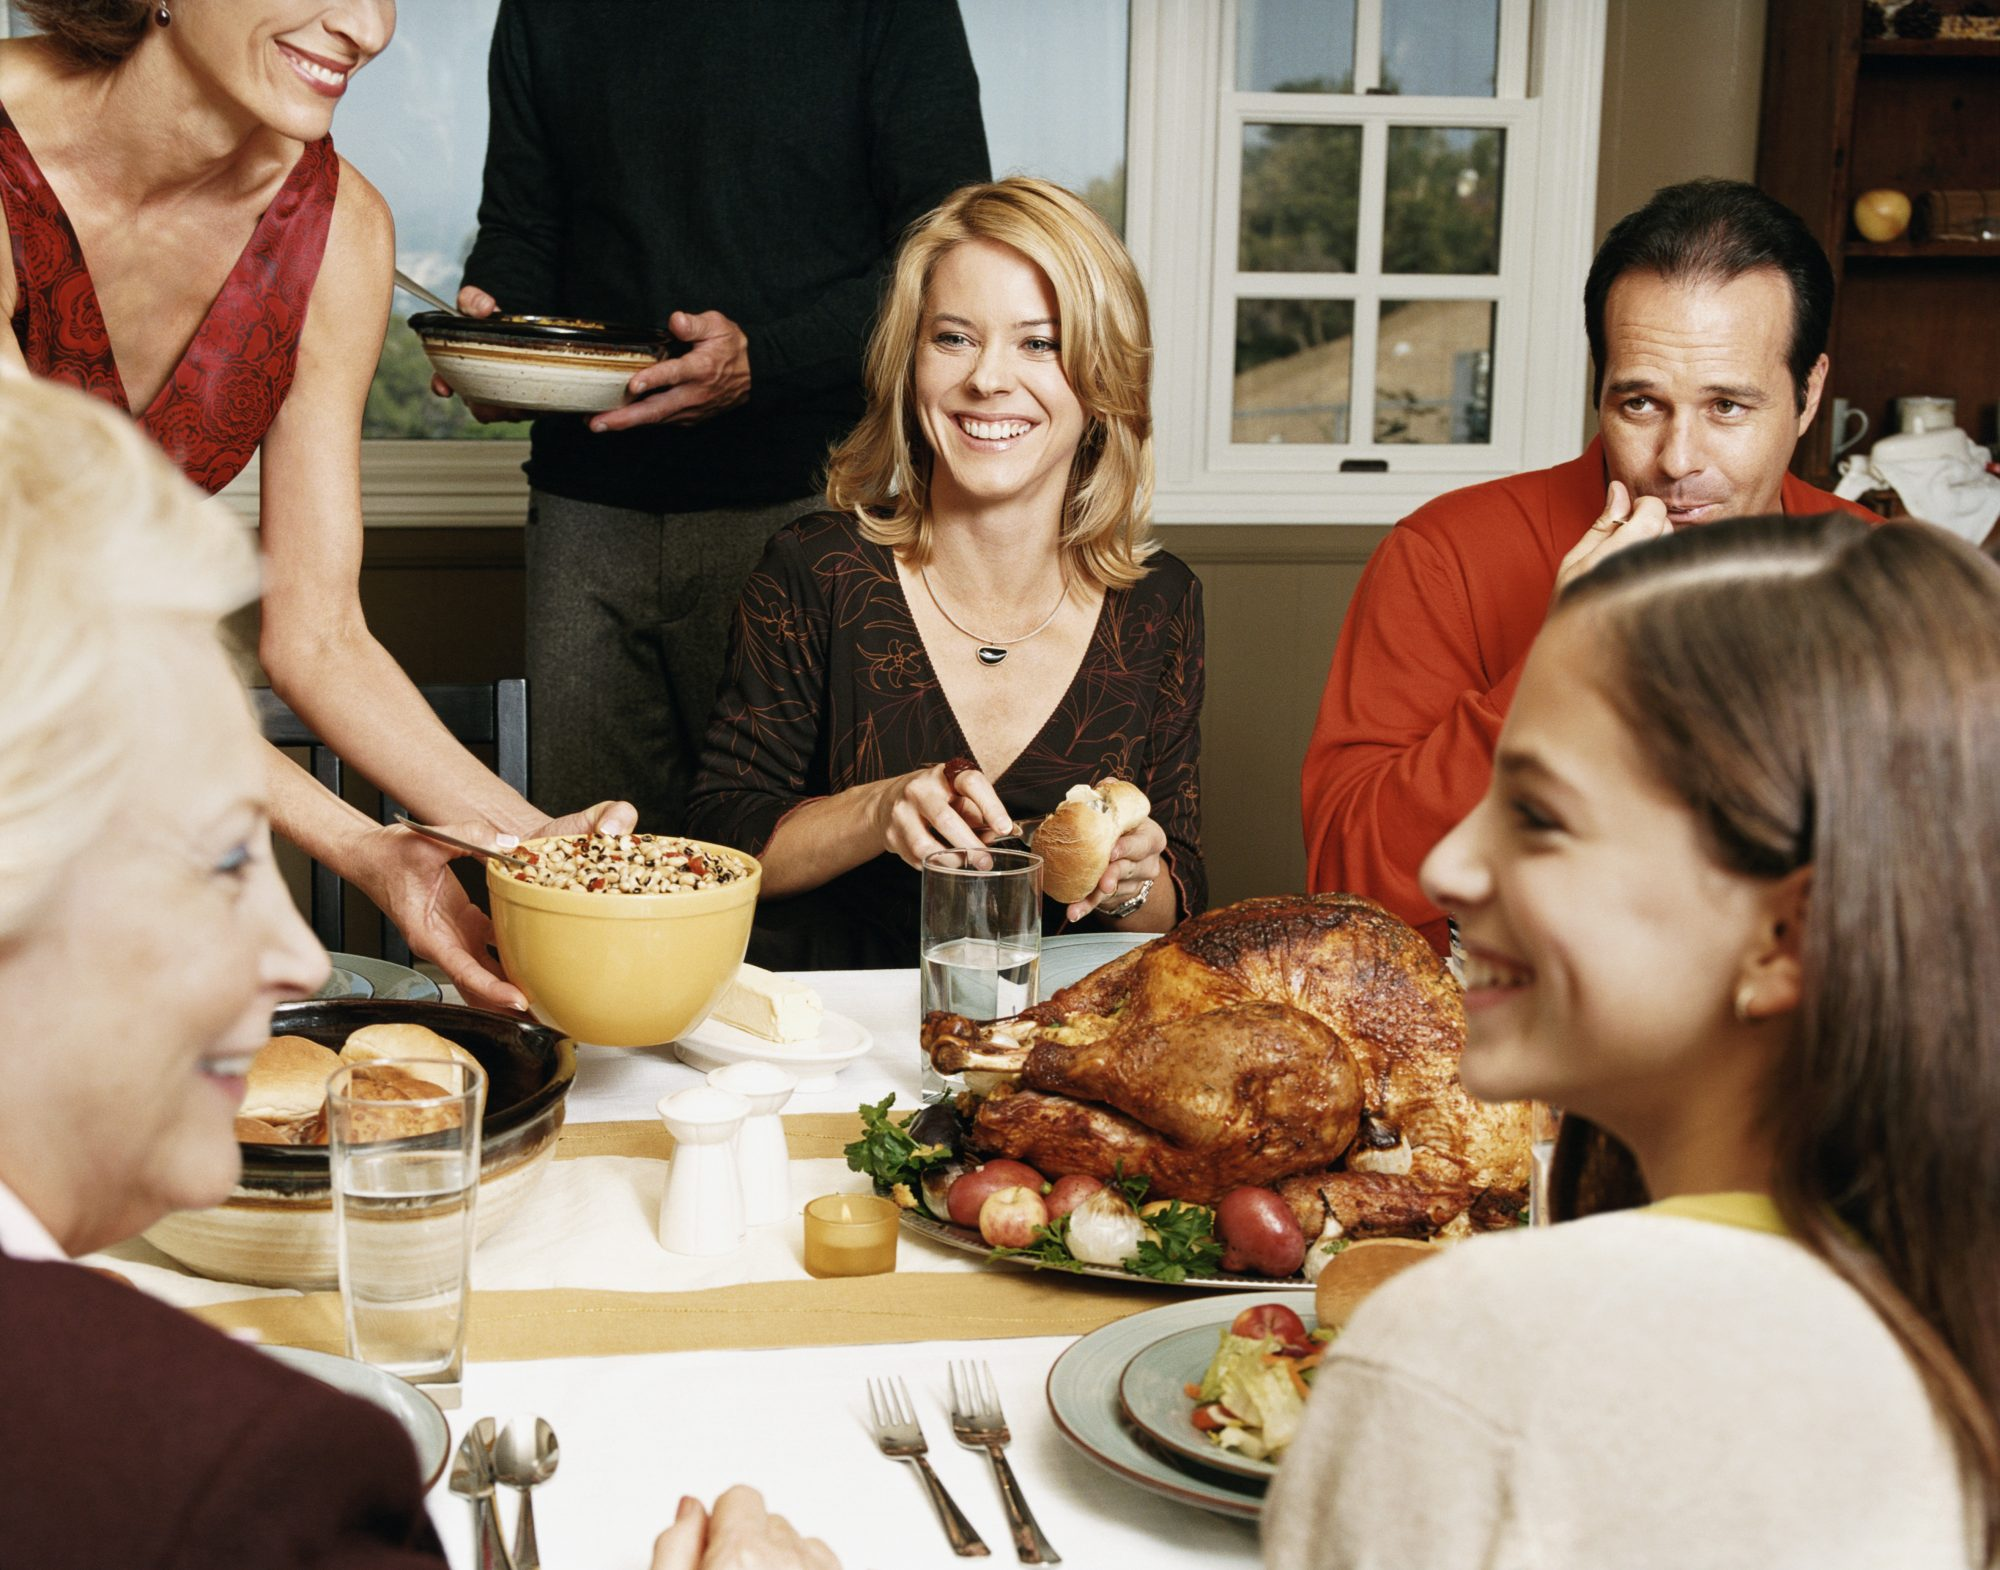 Family at Table for Thanksgiving